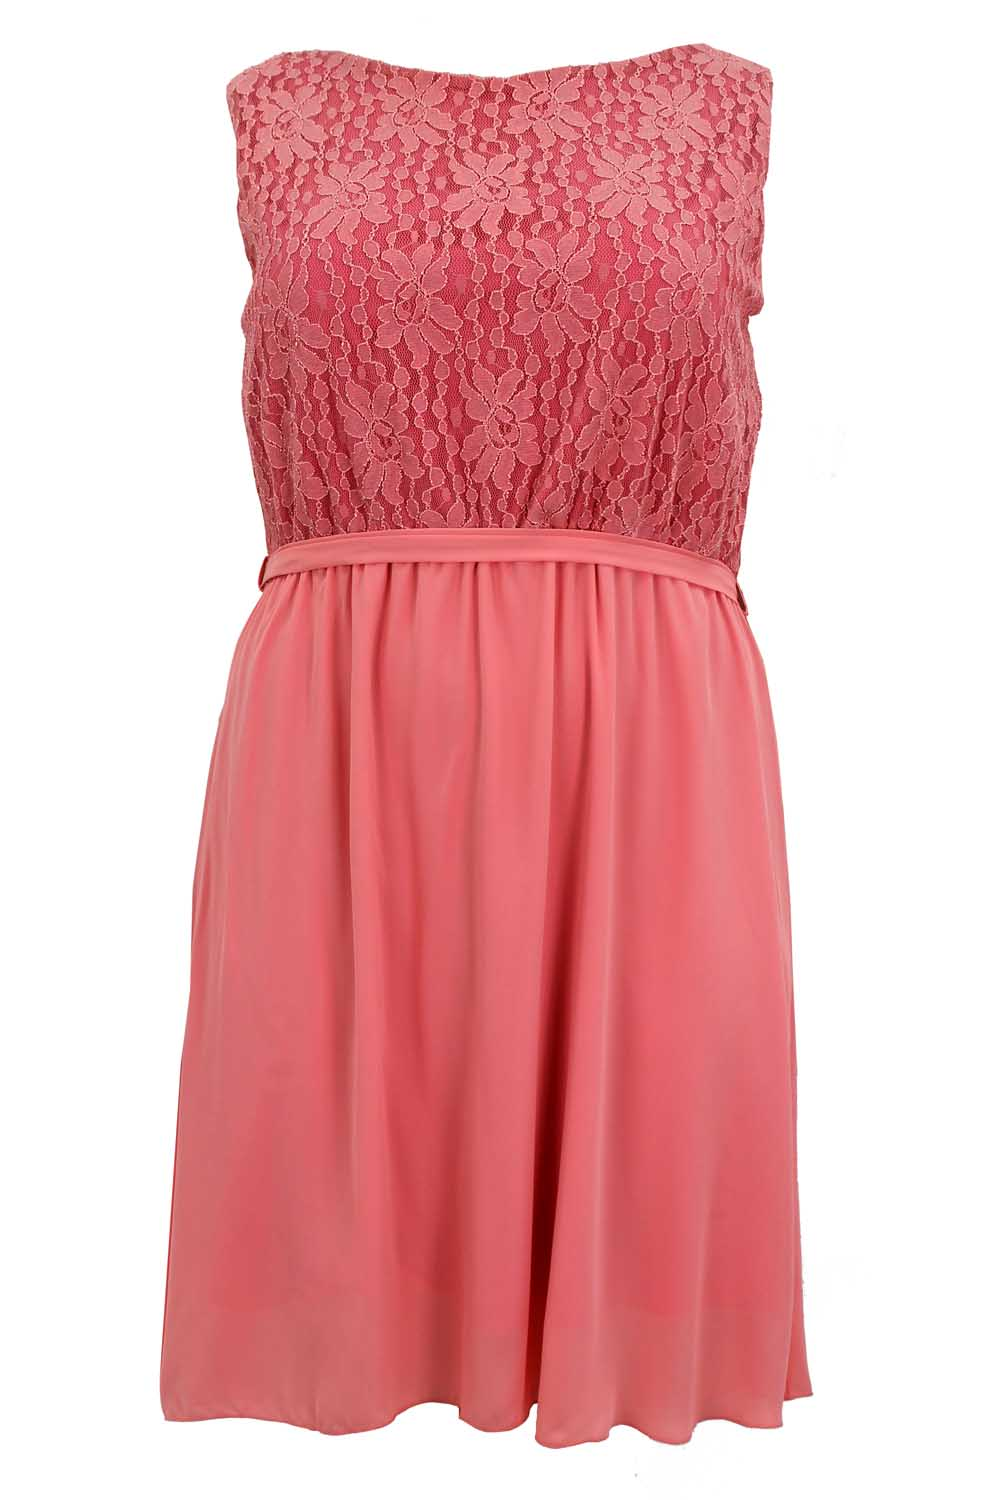 Ladies Womens Plus Size Skater Dress Lace Contrast Sleeveless Bow Back Detail